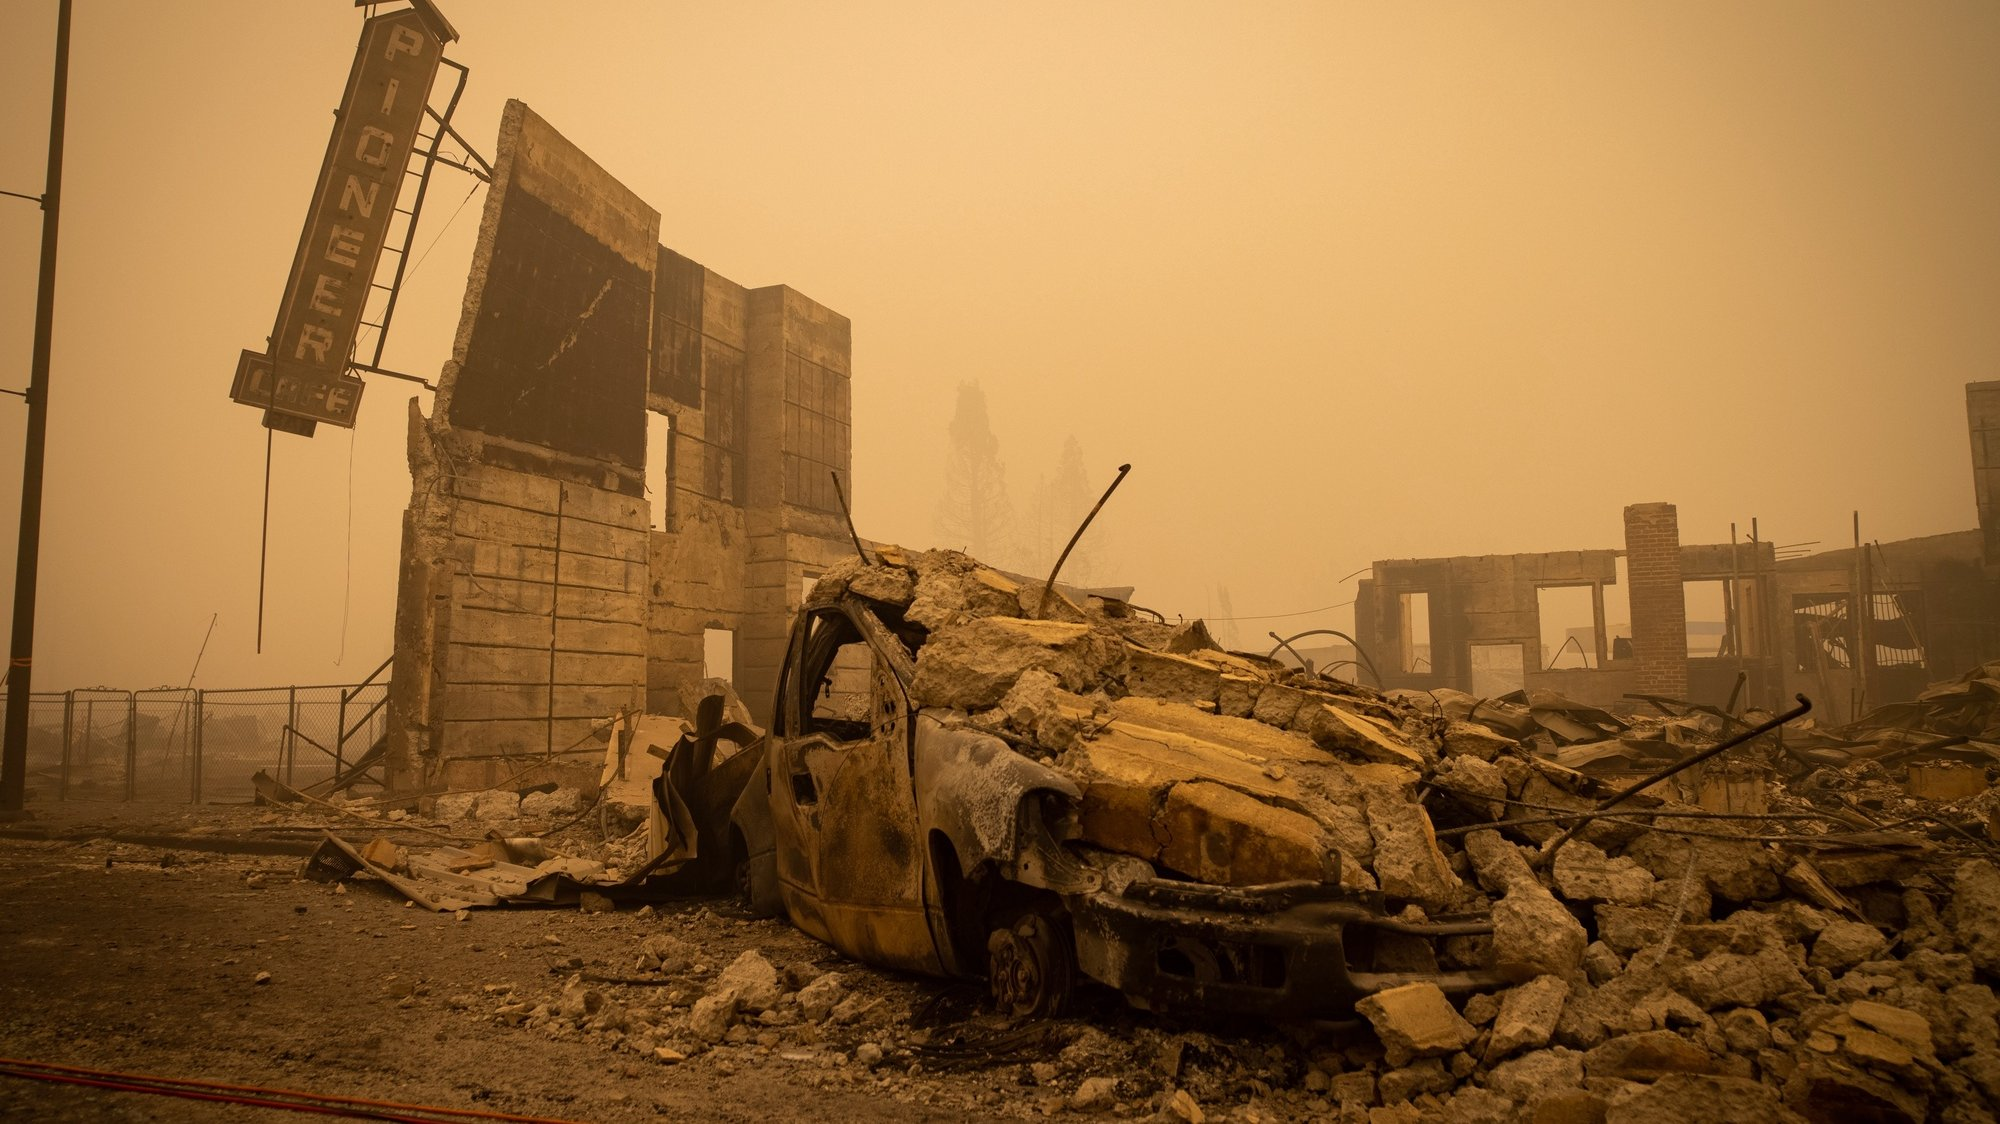 epa09404930 Buildings and vehicles are left destroyed by the Dixie Fire in Greenville, California, USA, 07 August 2021. The Dixie Fire had grown to over 440,000 acres as of 07 August.  EPA/CHRISTIAN MONTERROSA